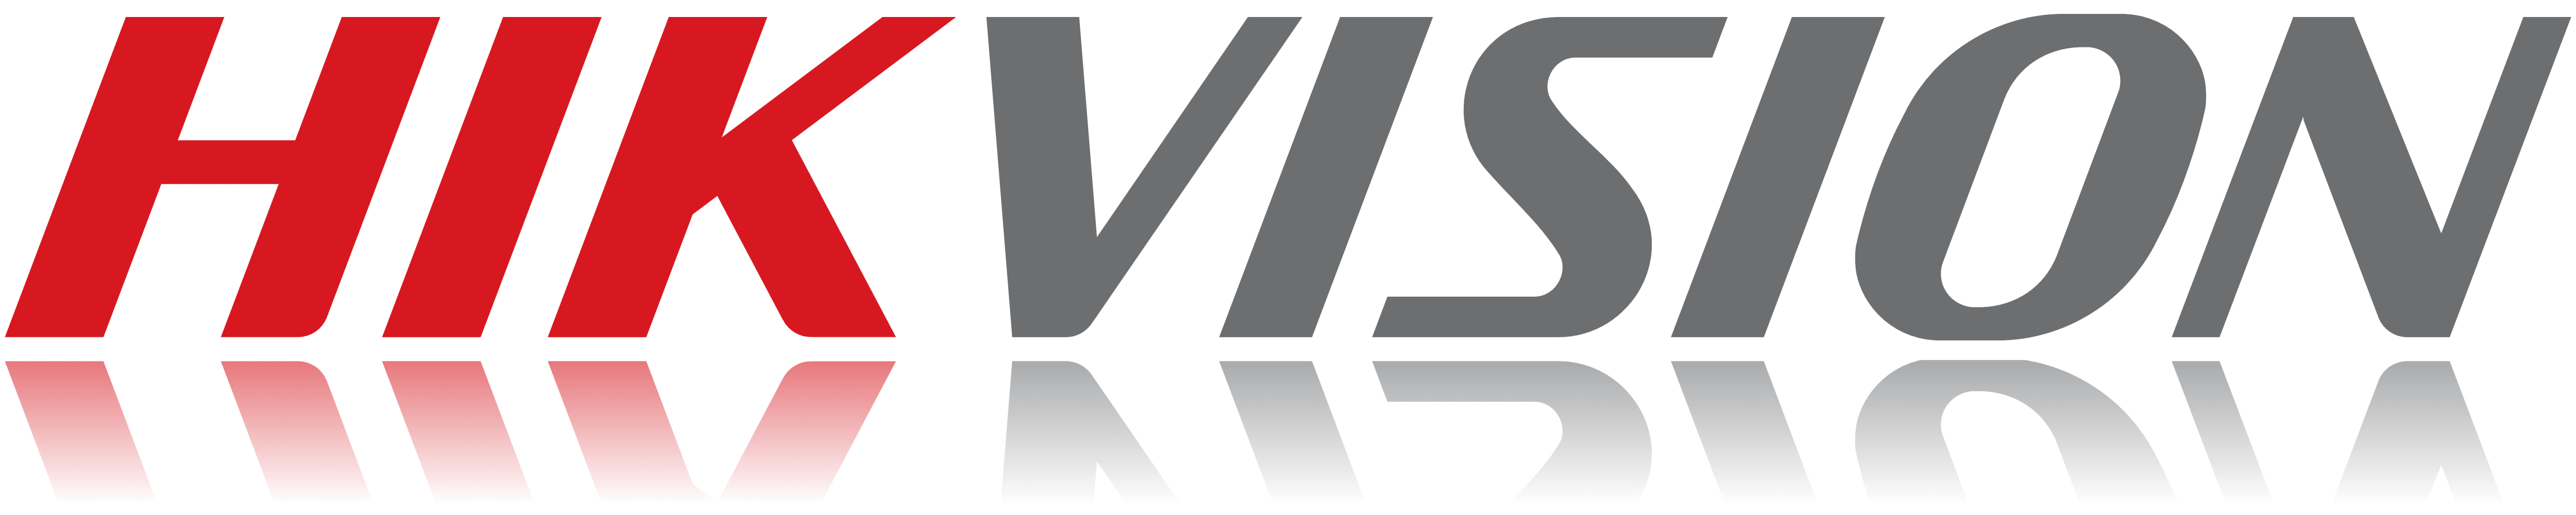 Hikvision HiWatch Hikvision_logo